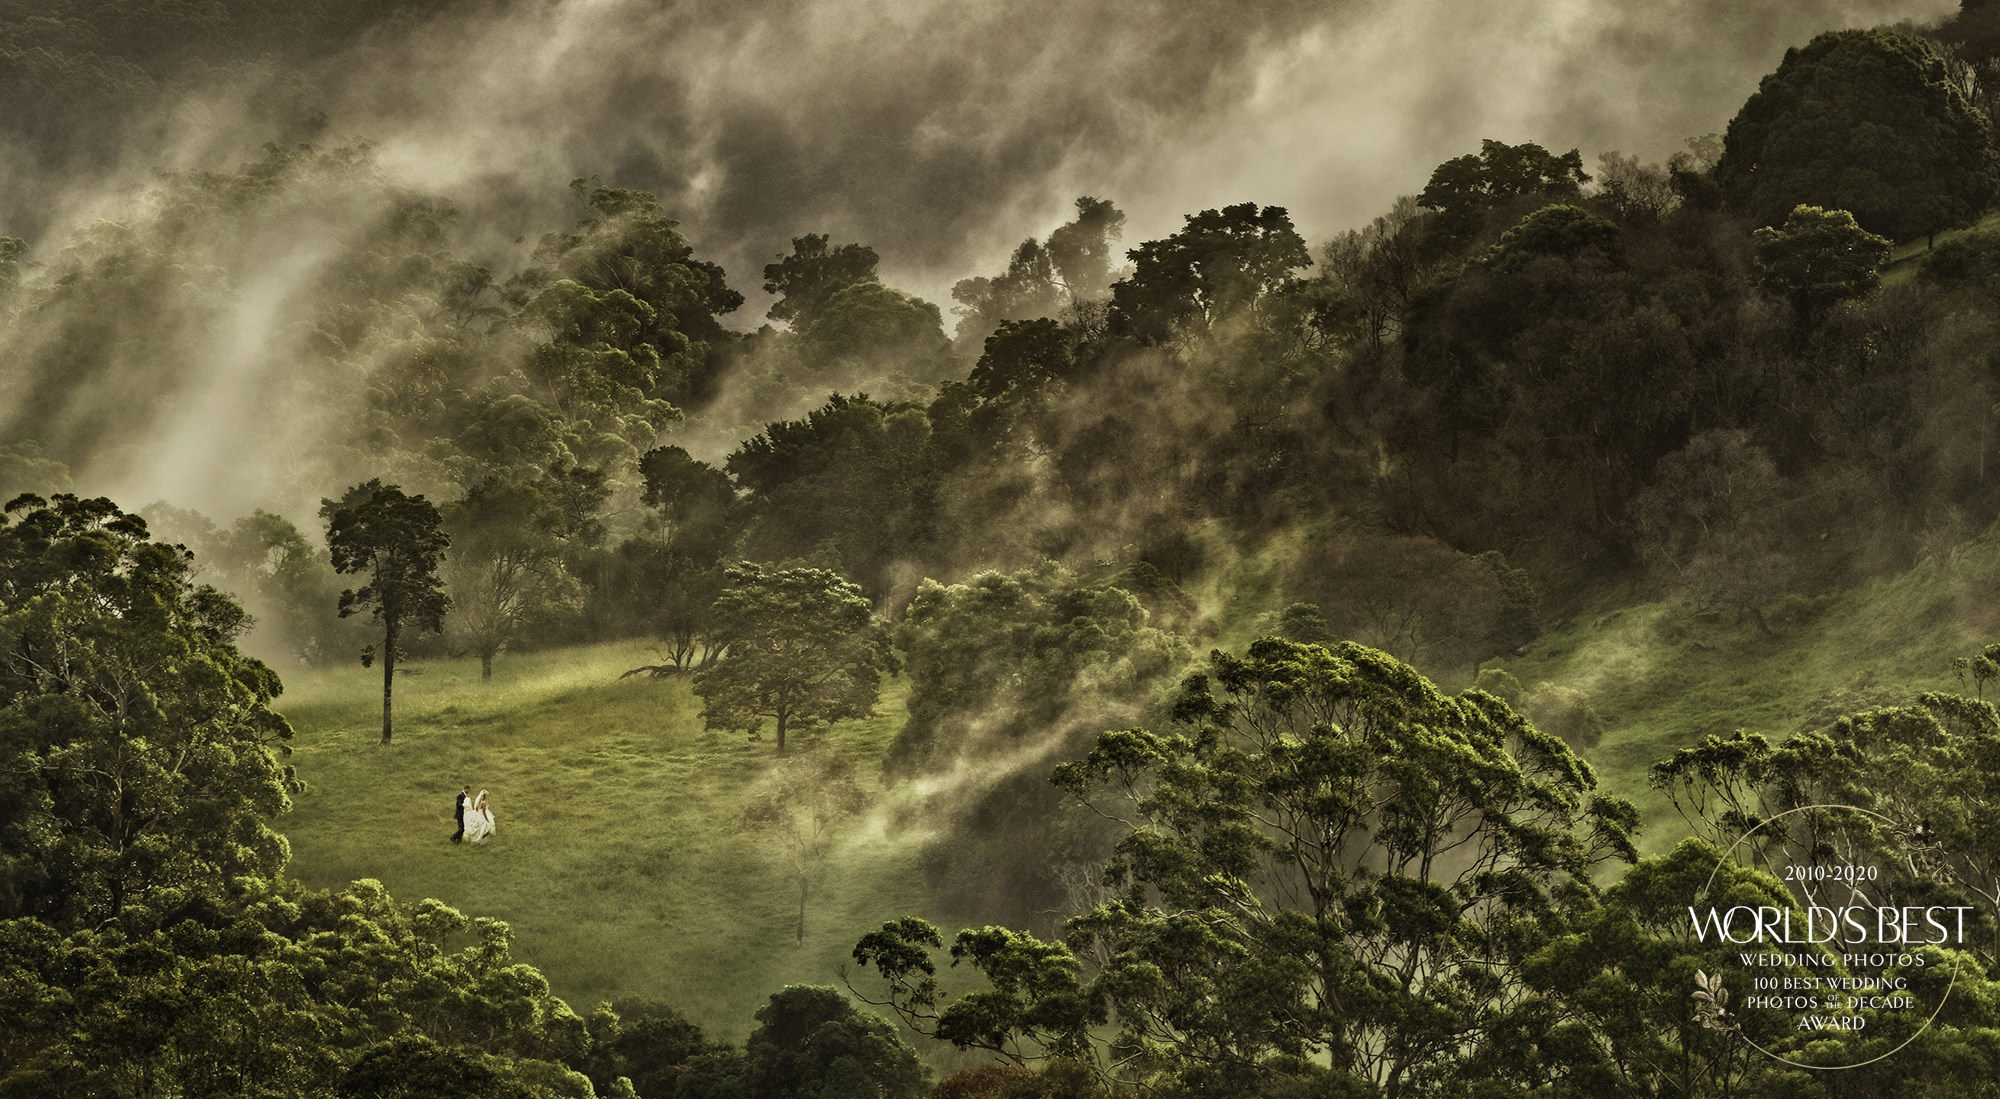 Award-winning photo of couple in vast landscape by Marcus Bell - Australia